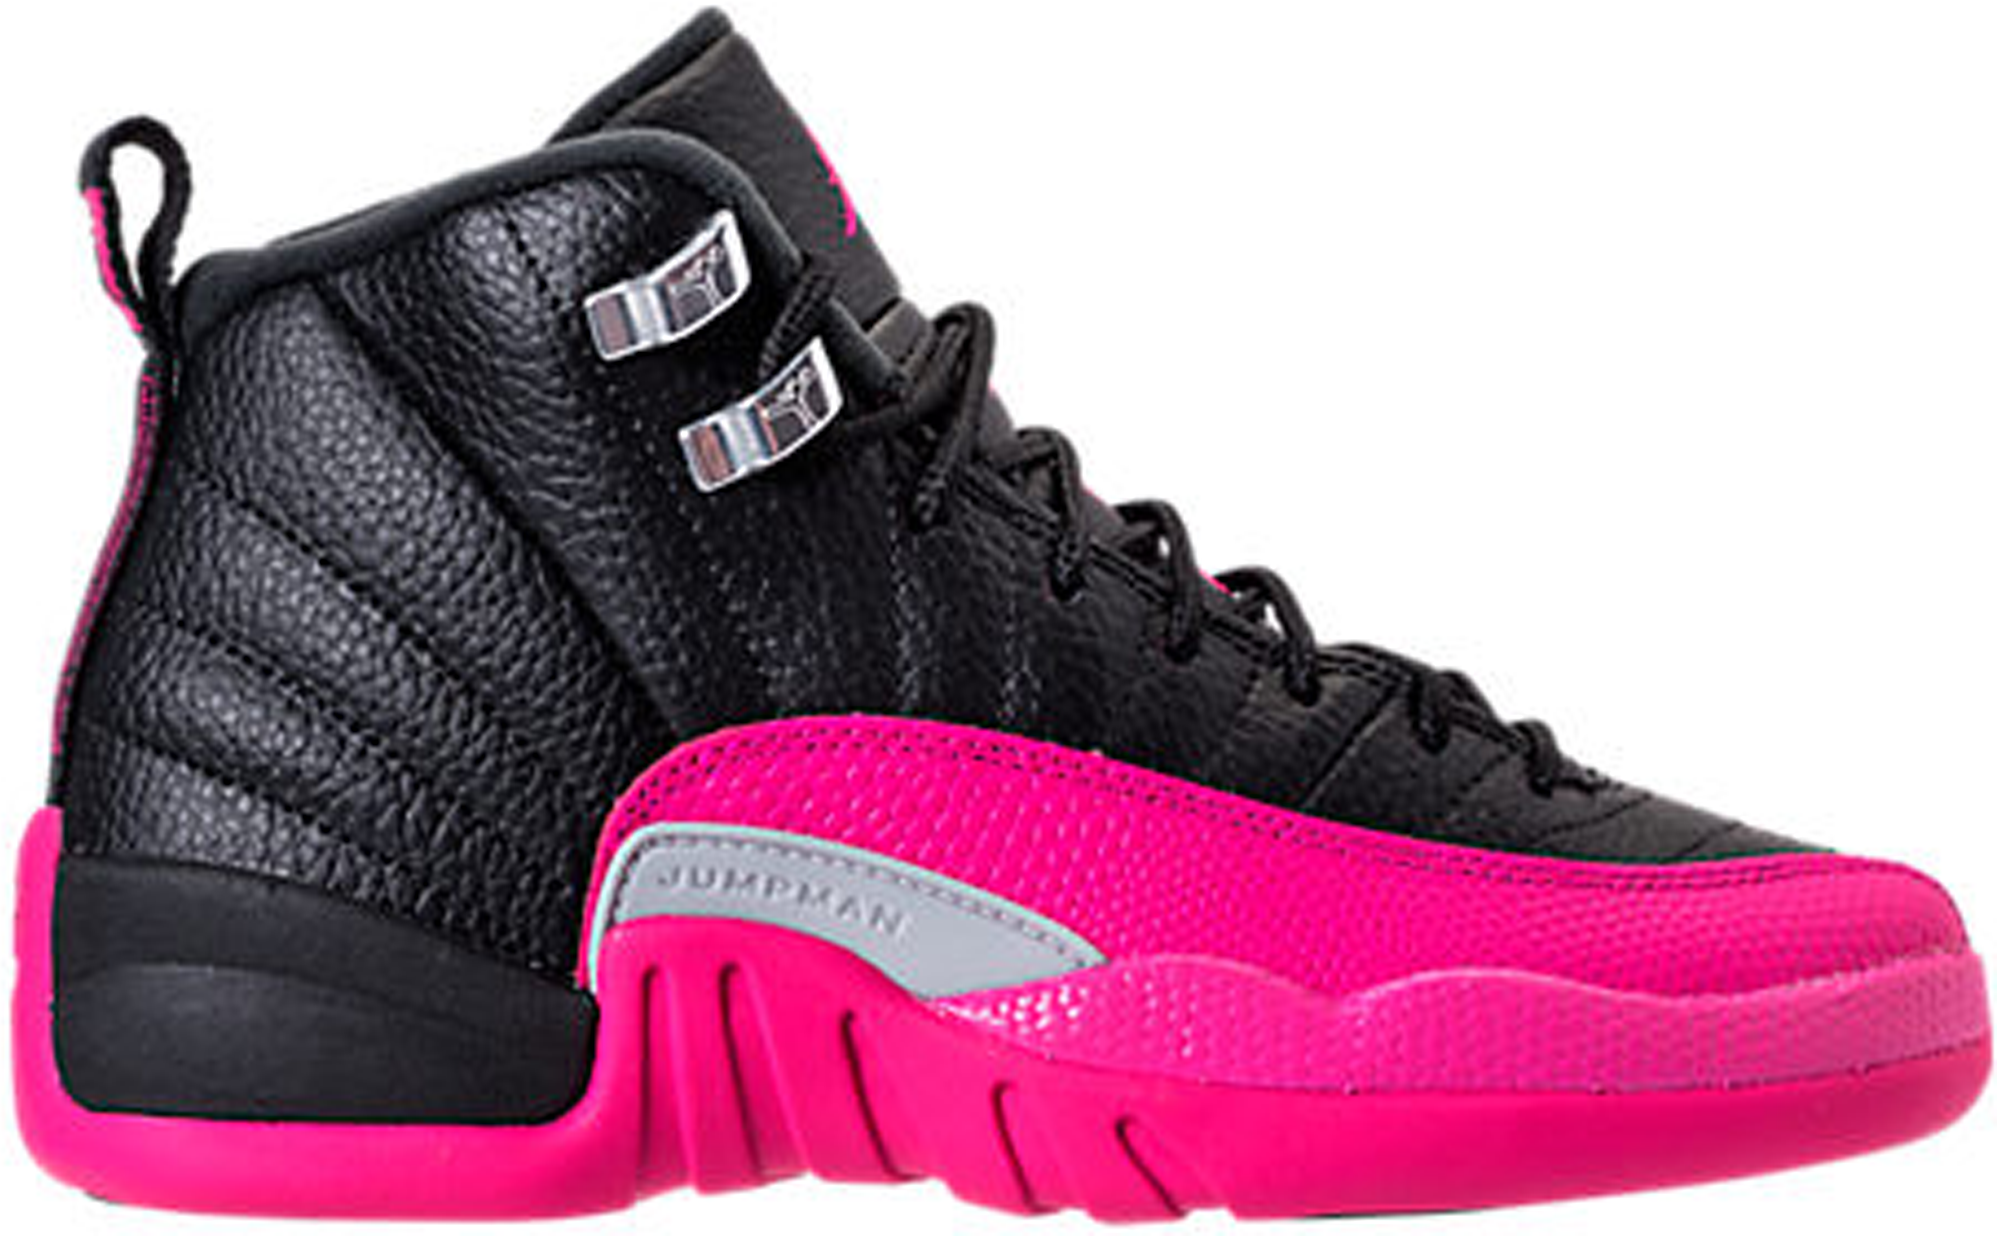 Jordan 12 Retro Black Deadly Pink (GS)